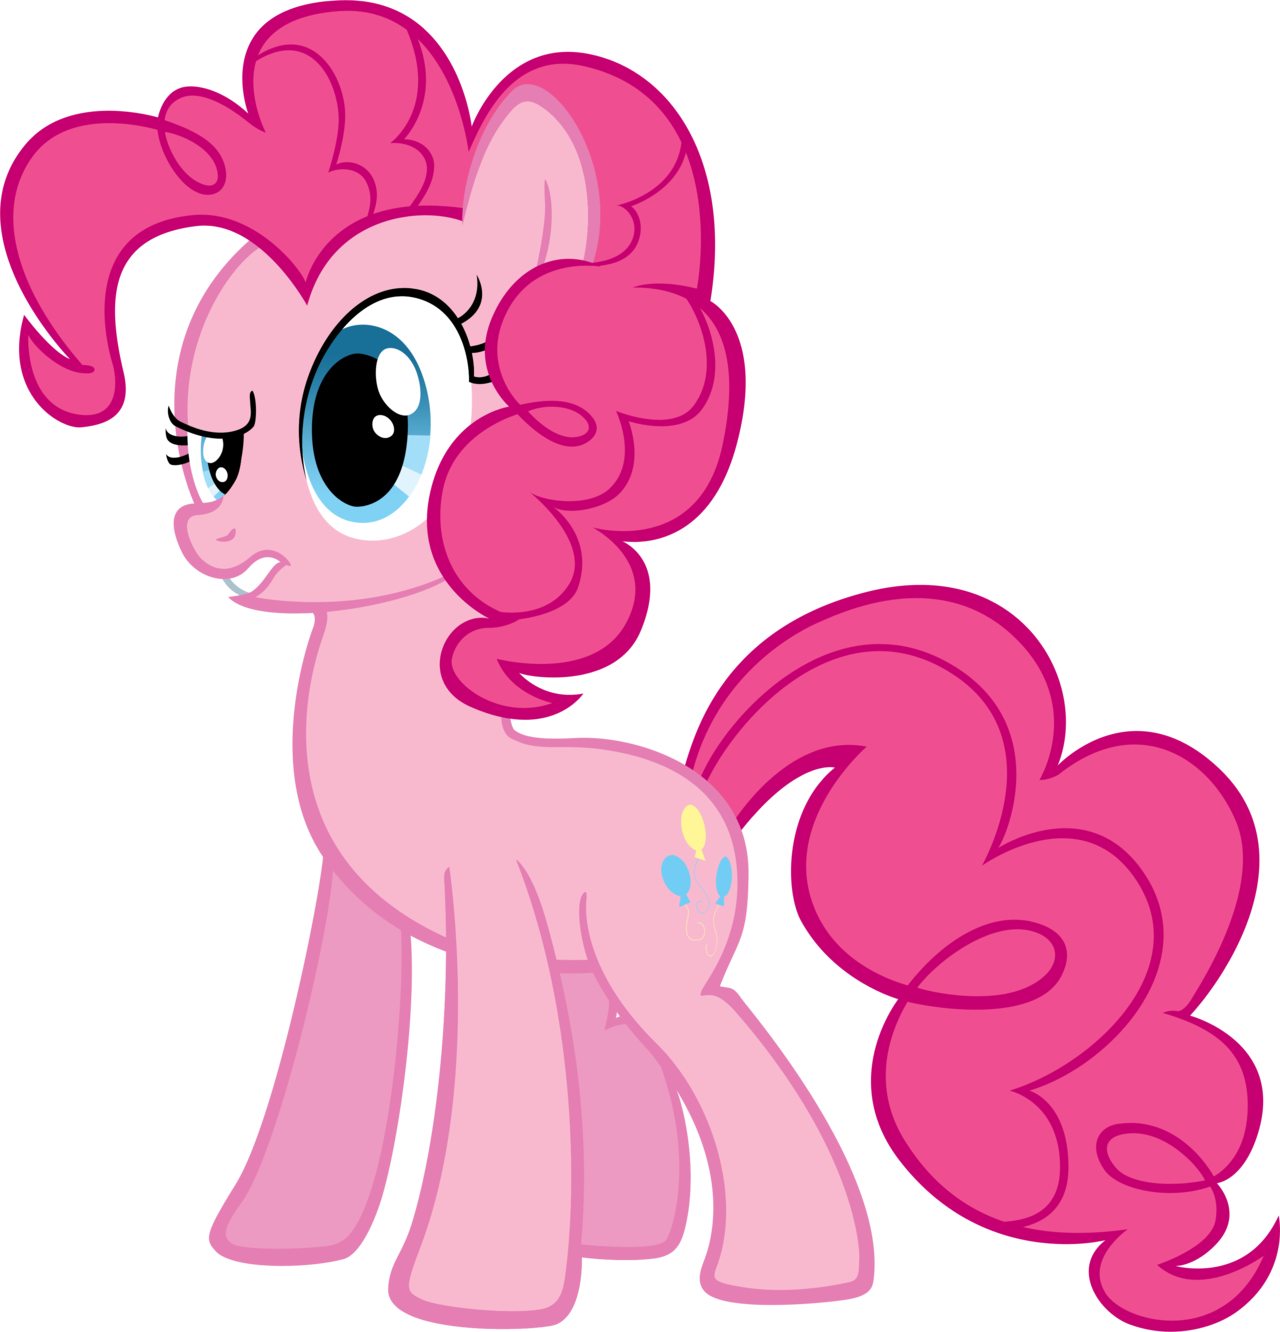 Pinkie pie halloween clipart jpg freeuse library Pinkie Pie Clipart jpg freeuse library